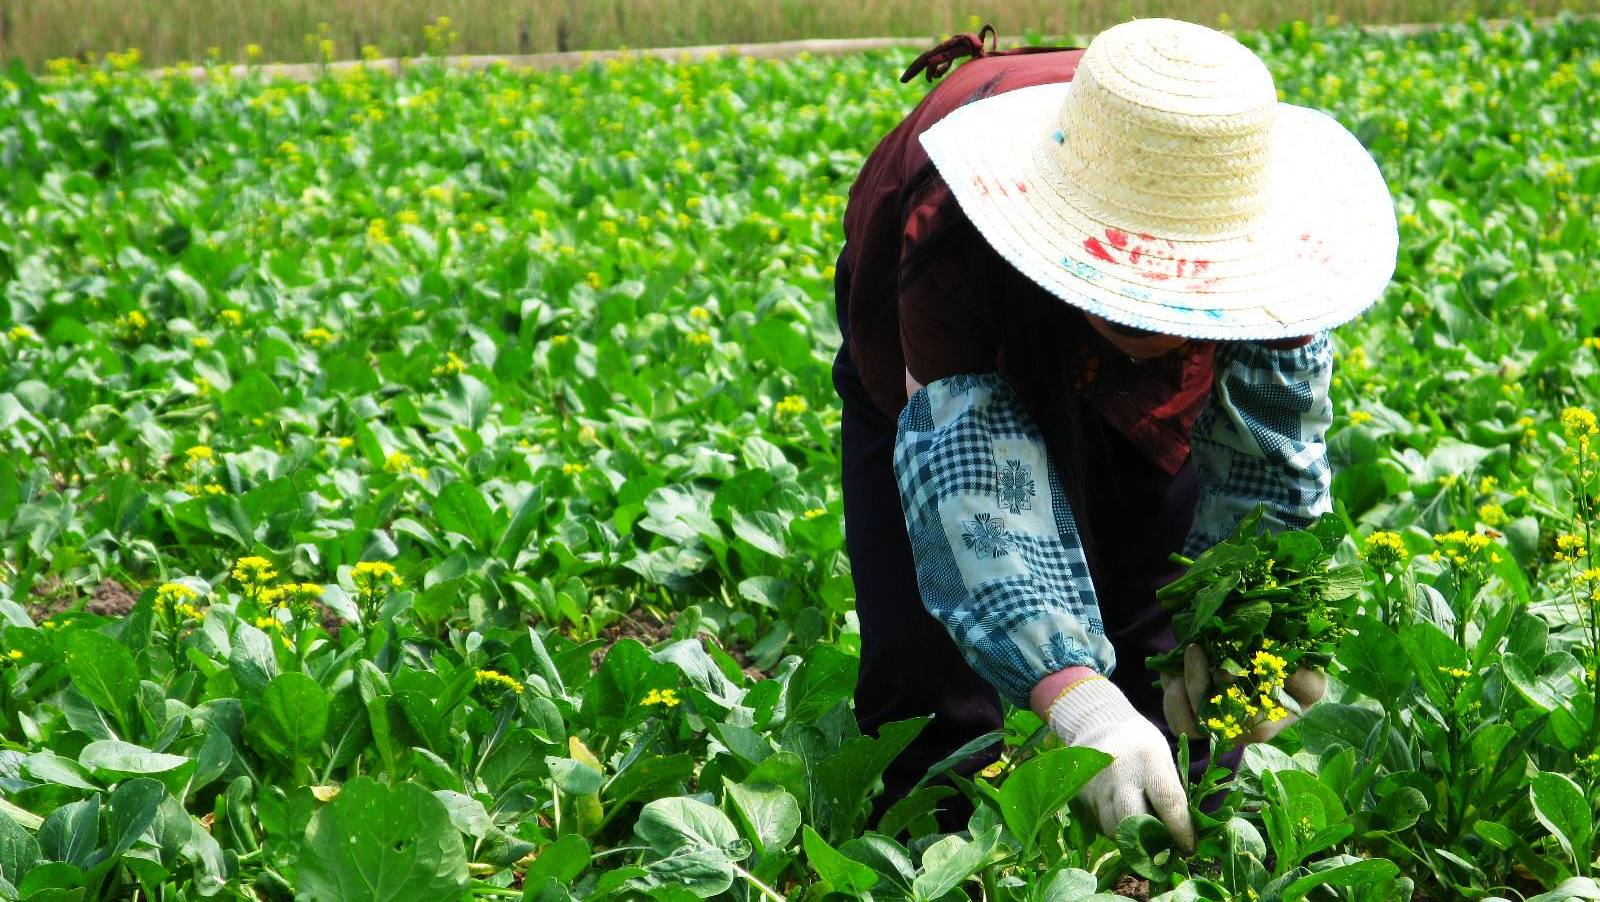 China's Genetically Modified Food Fight